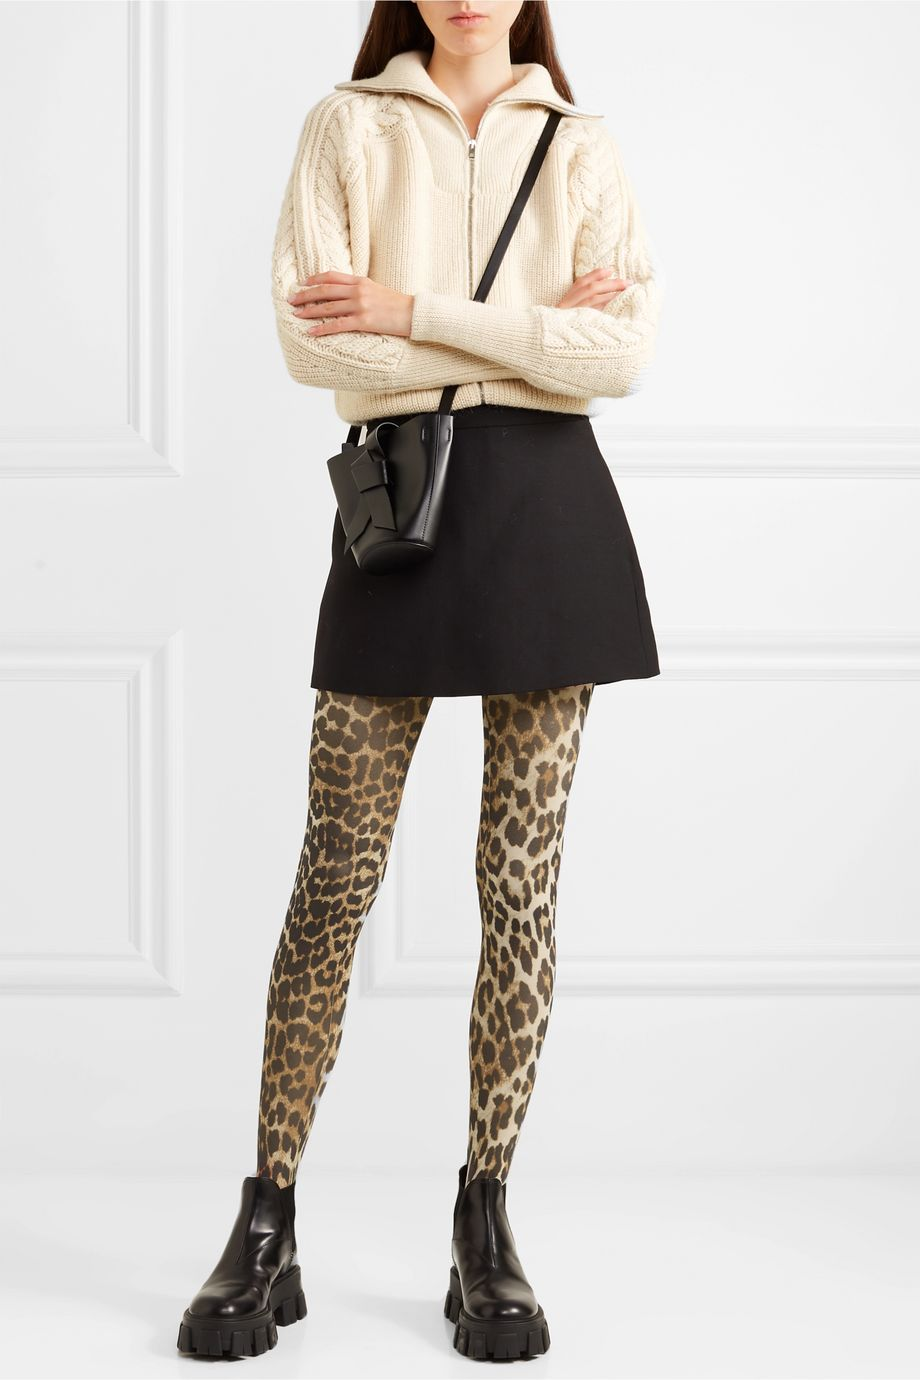 GANNI + Swedish Stockings Strumpfhose mit Leopardenprint 60 den